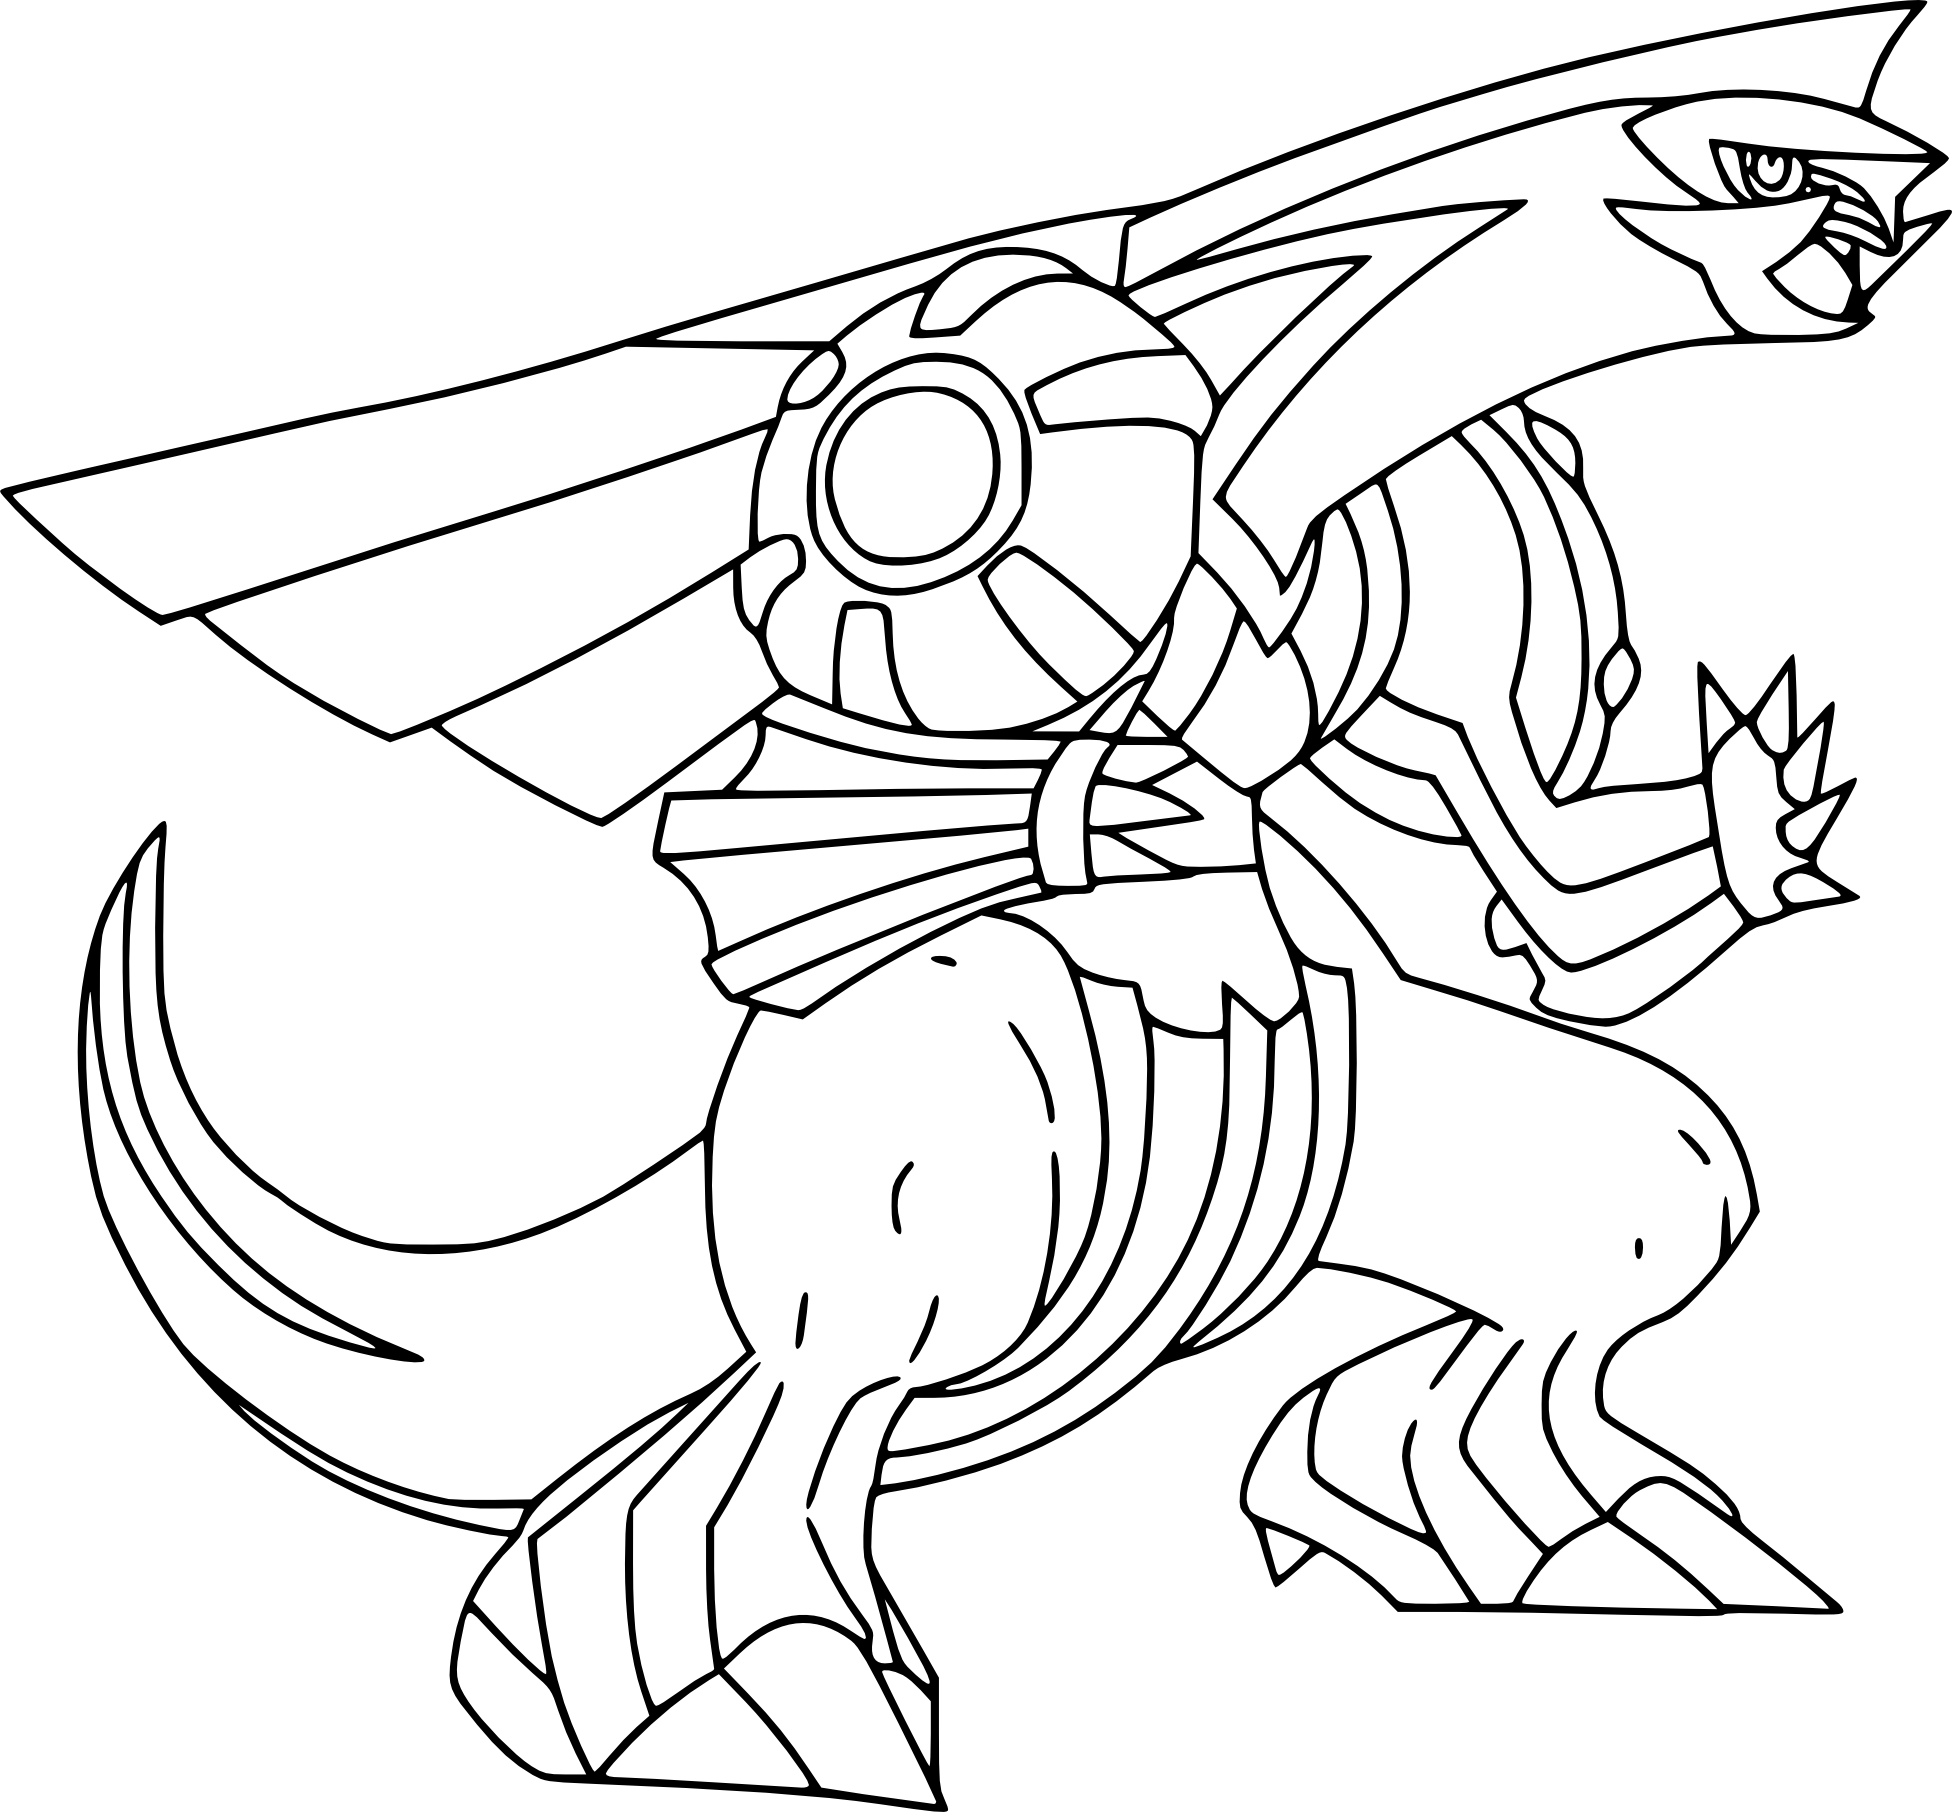 15 coloriage pokemon de magearna - Coloriage pokemon legendaire ...